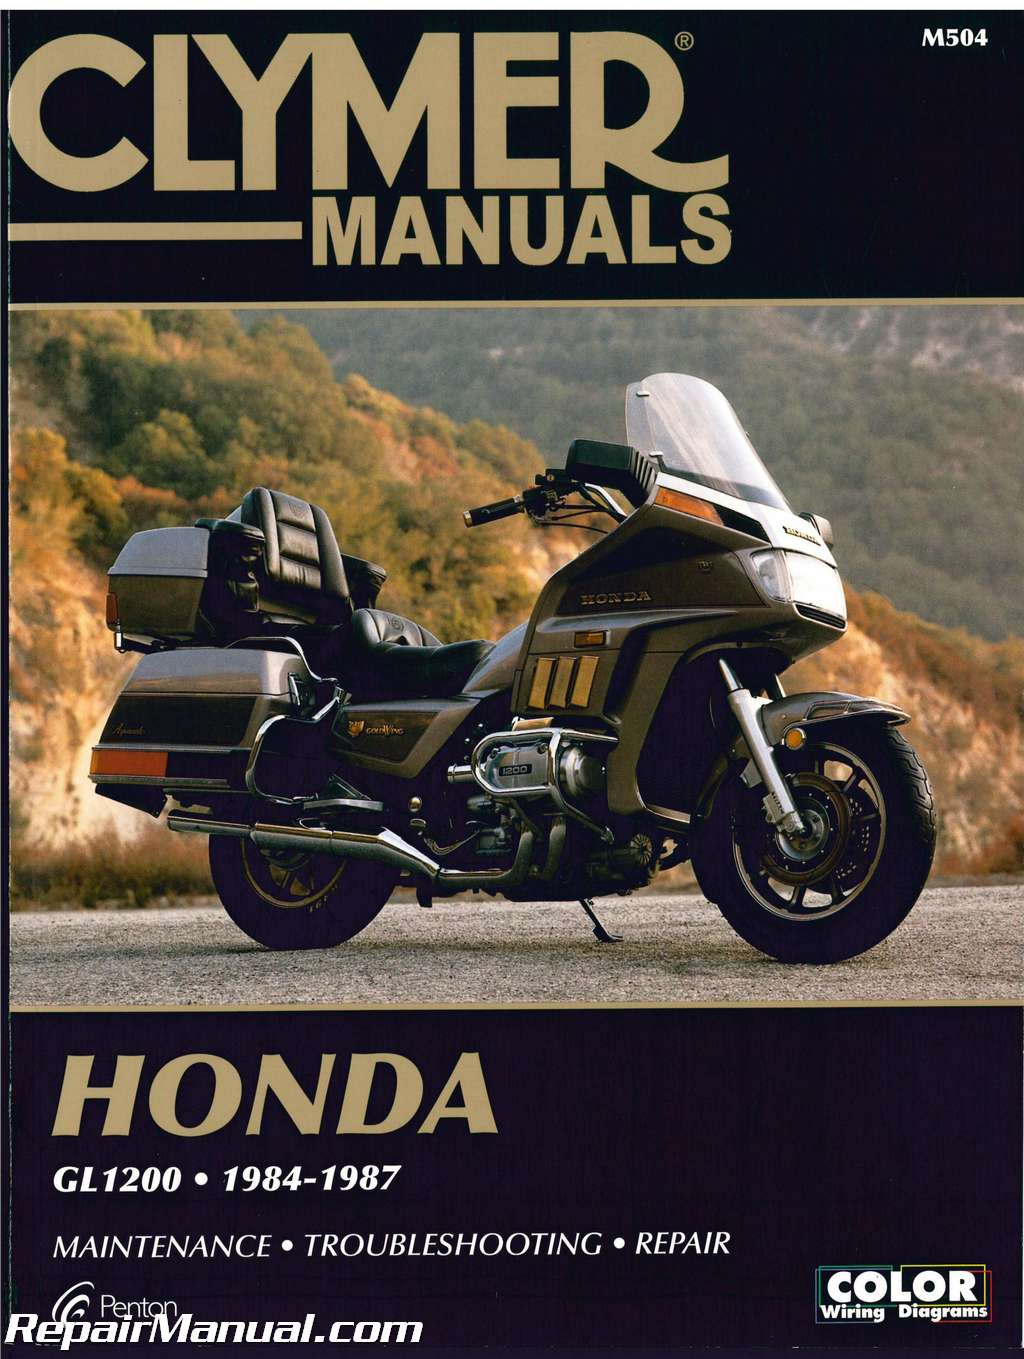 Wiring Diagram For 1987 Honda Goldwing Diy Enthusiasts 2003 Gl1200 Gold Wing Motorcycle Repair Manual 1984 Clymer Rh Repairmanual Com Parts Schematic